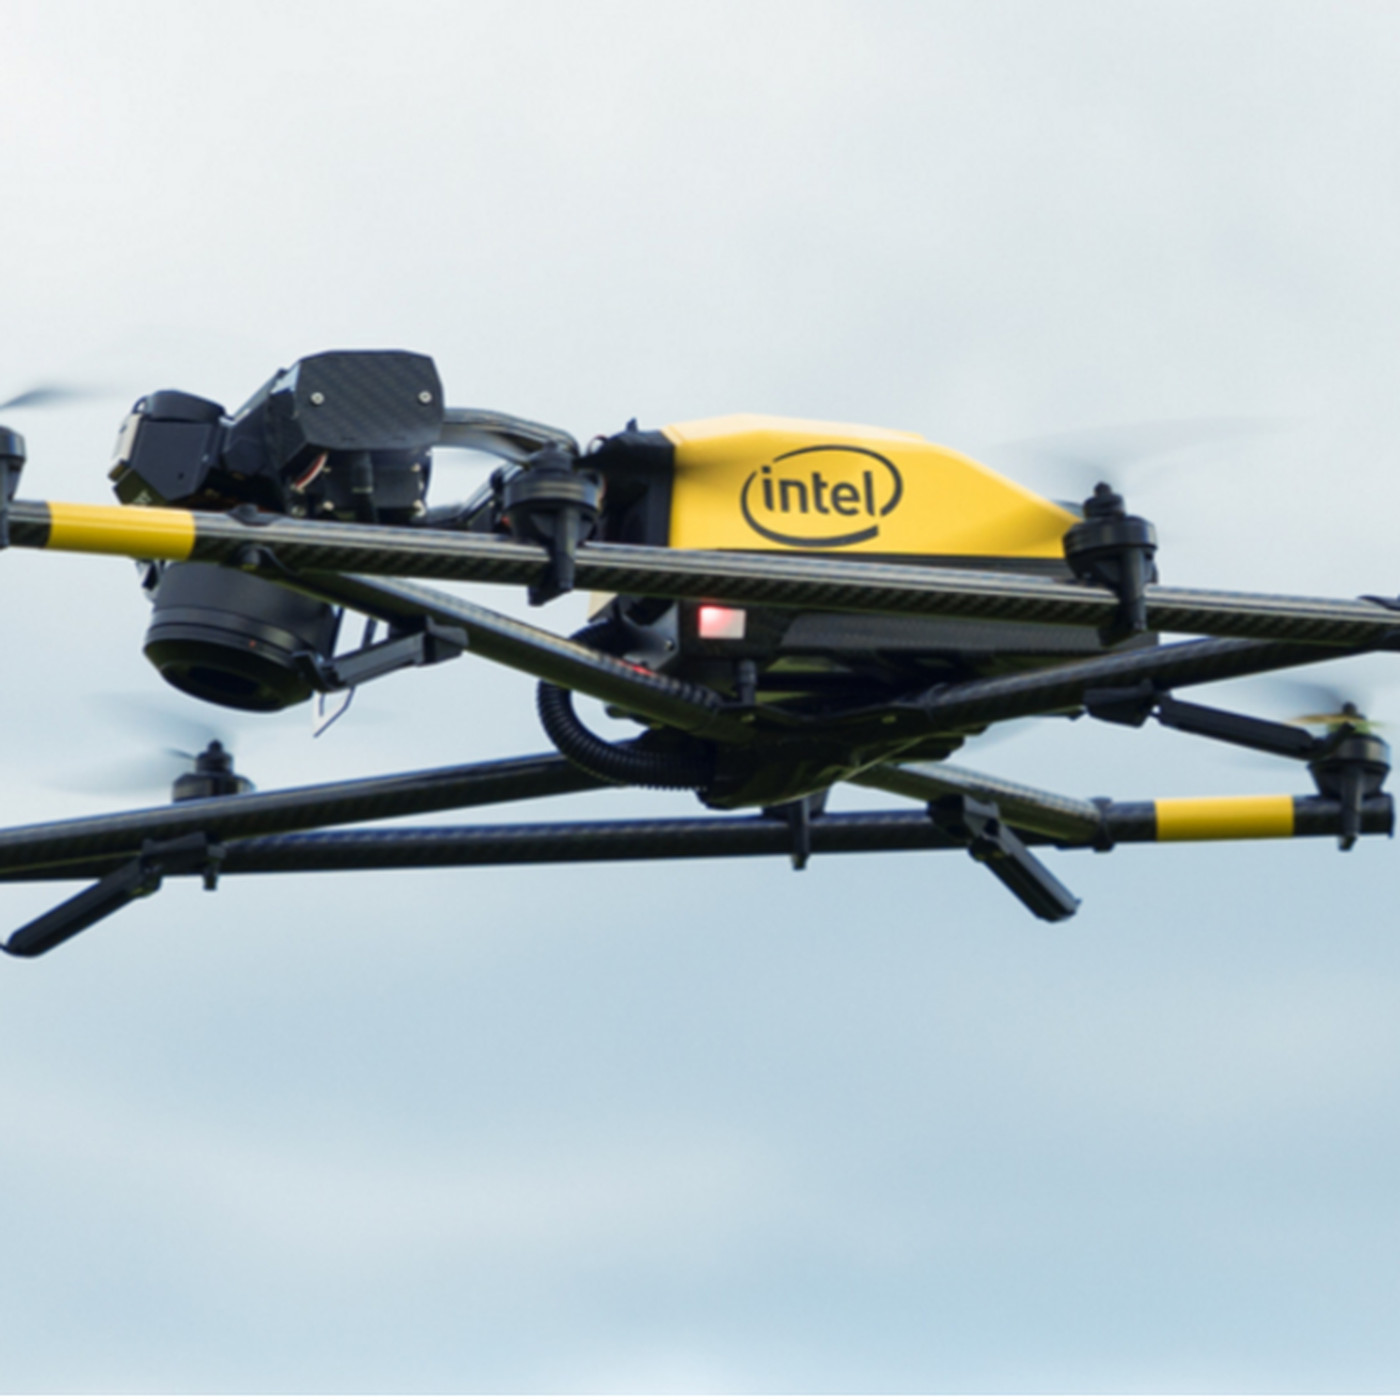 Sweden places ban on flying camera drones without surveillance permits 0c176c9d532